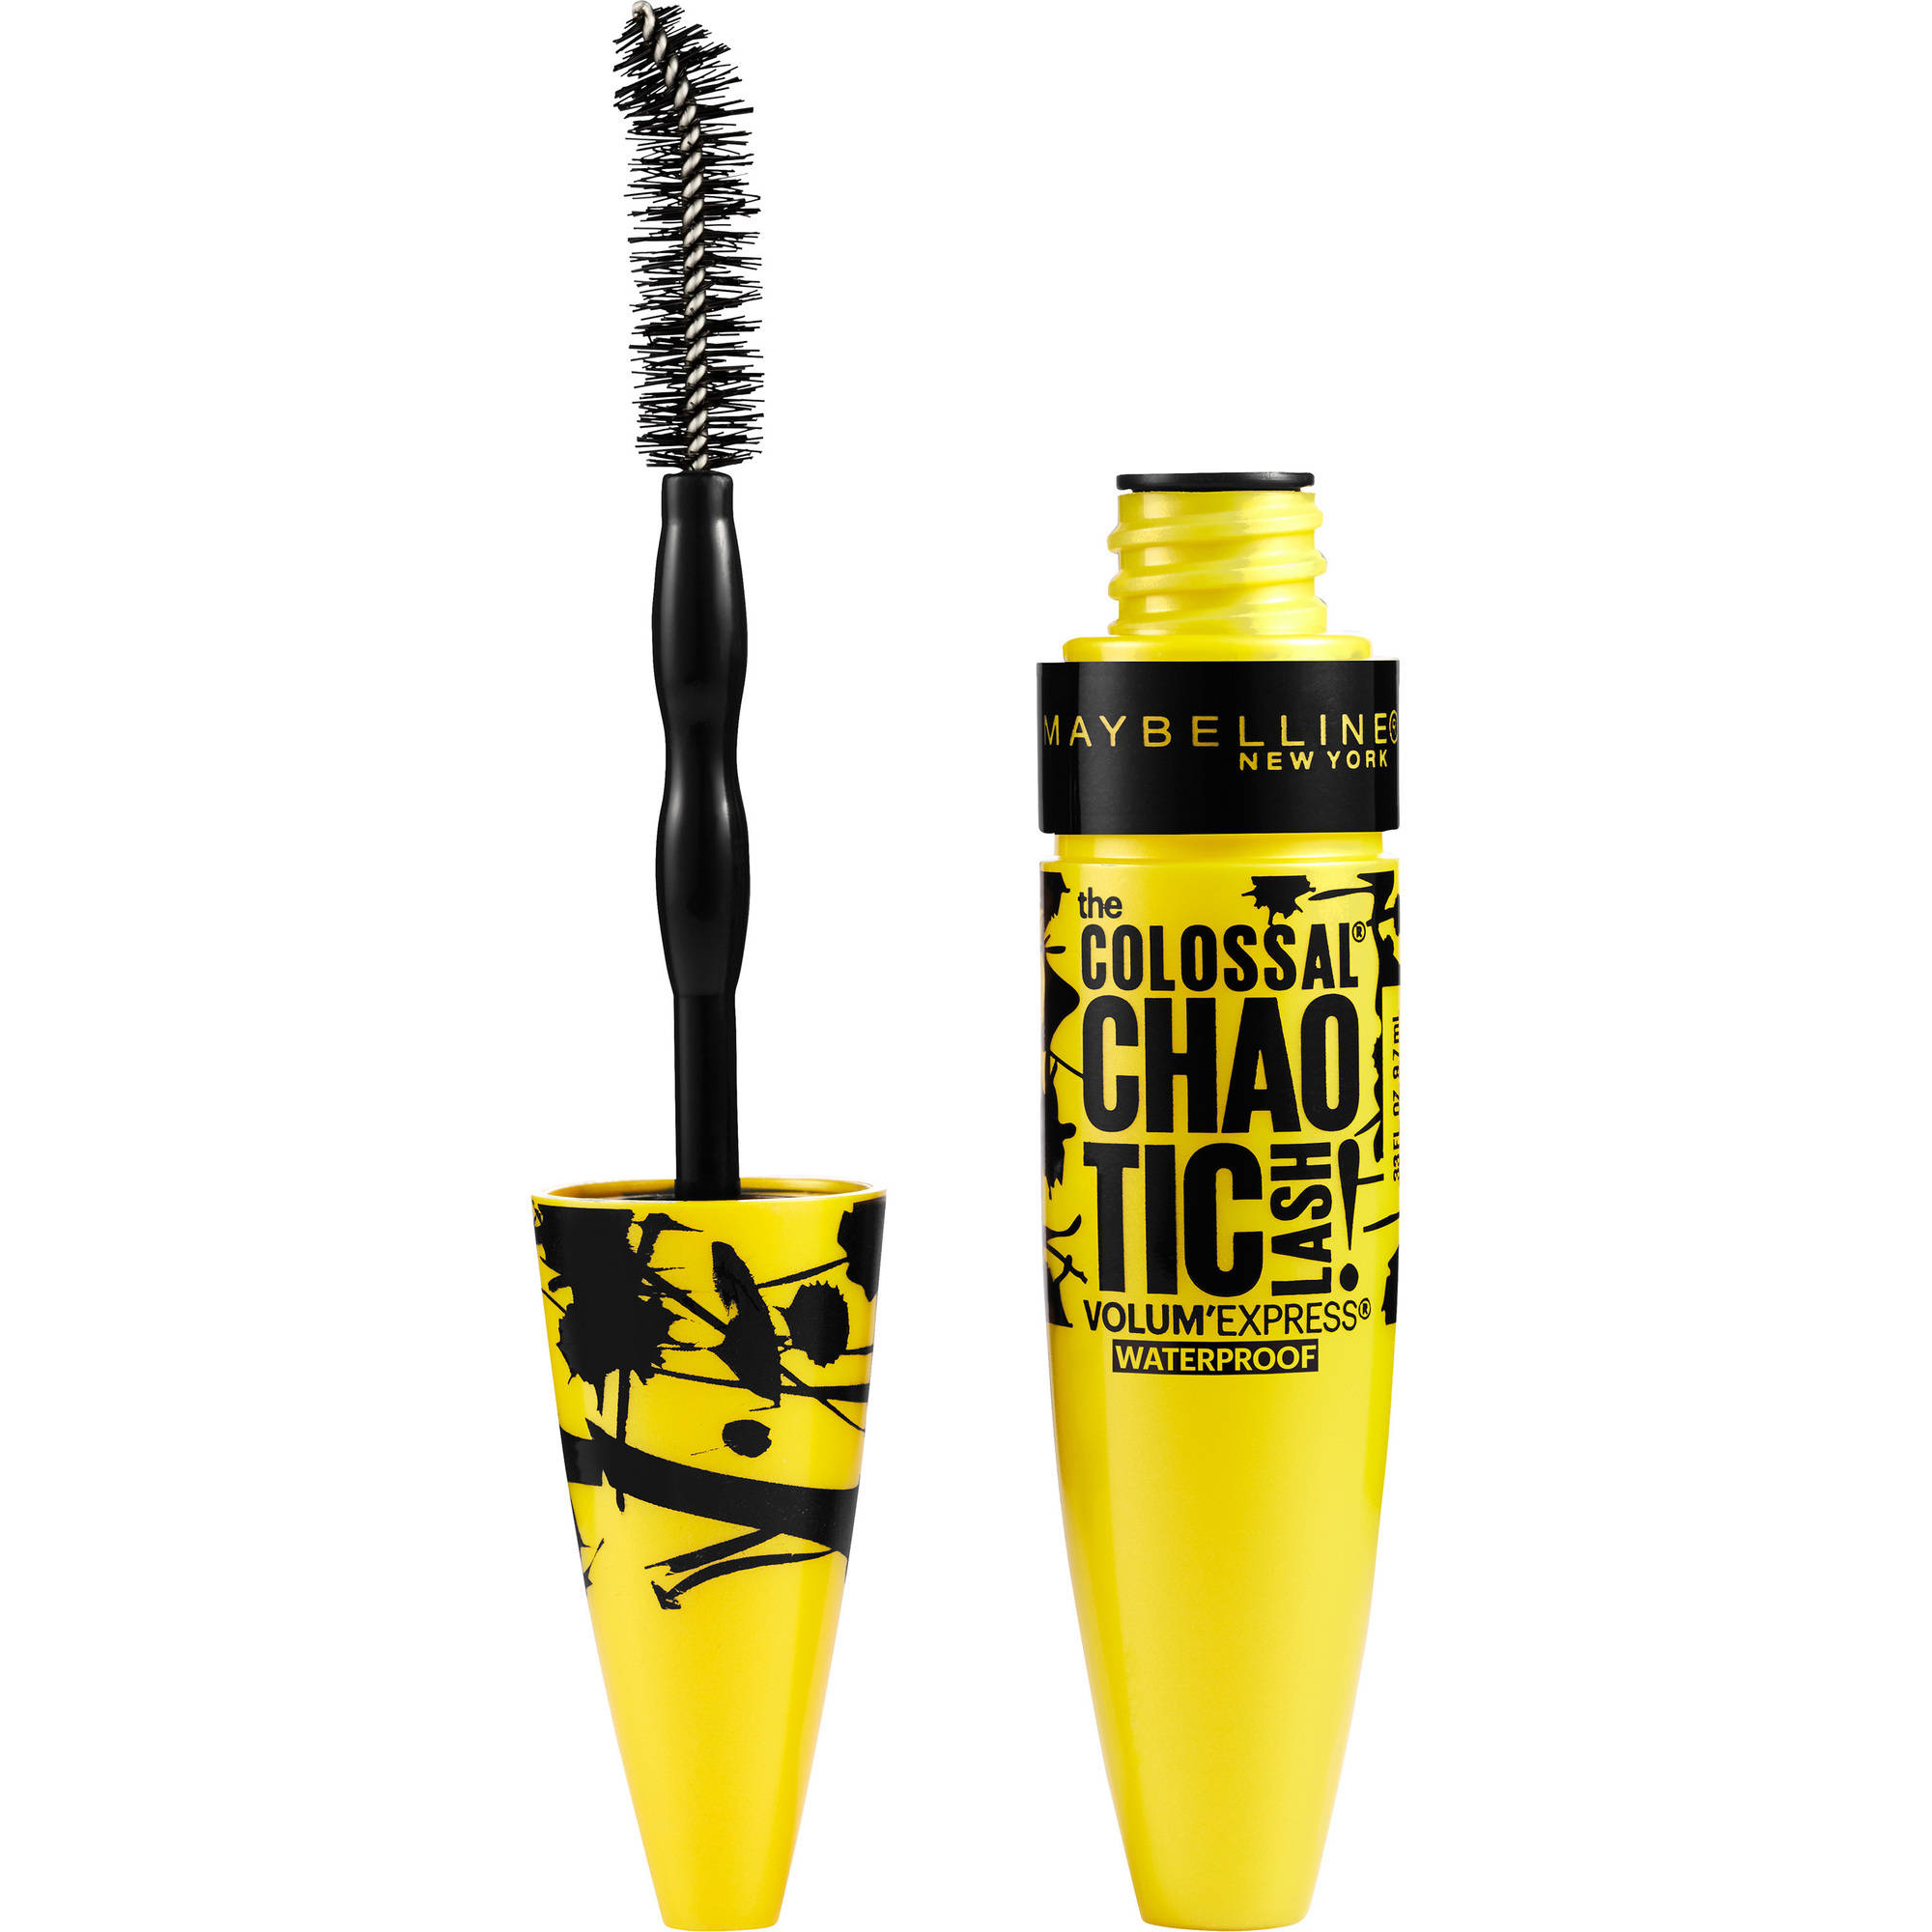 Maybelline New York Volum'Express the Colossal Chaotic Lash Waterproof Mascara, 219 Blackest Black, 0.32 fl oz